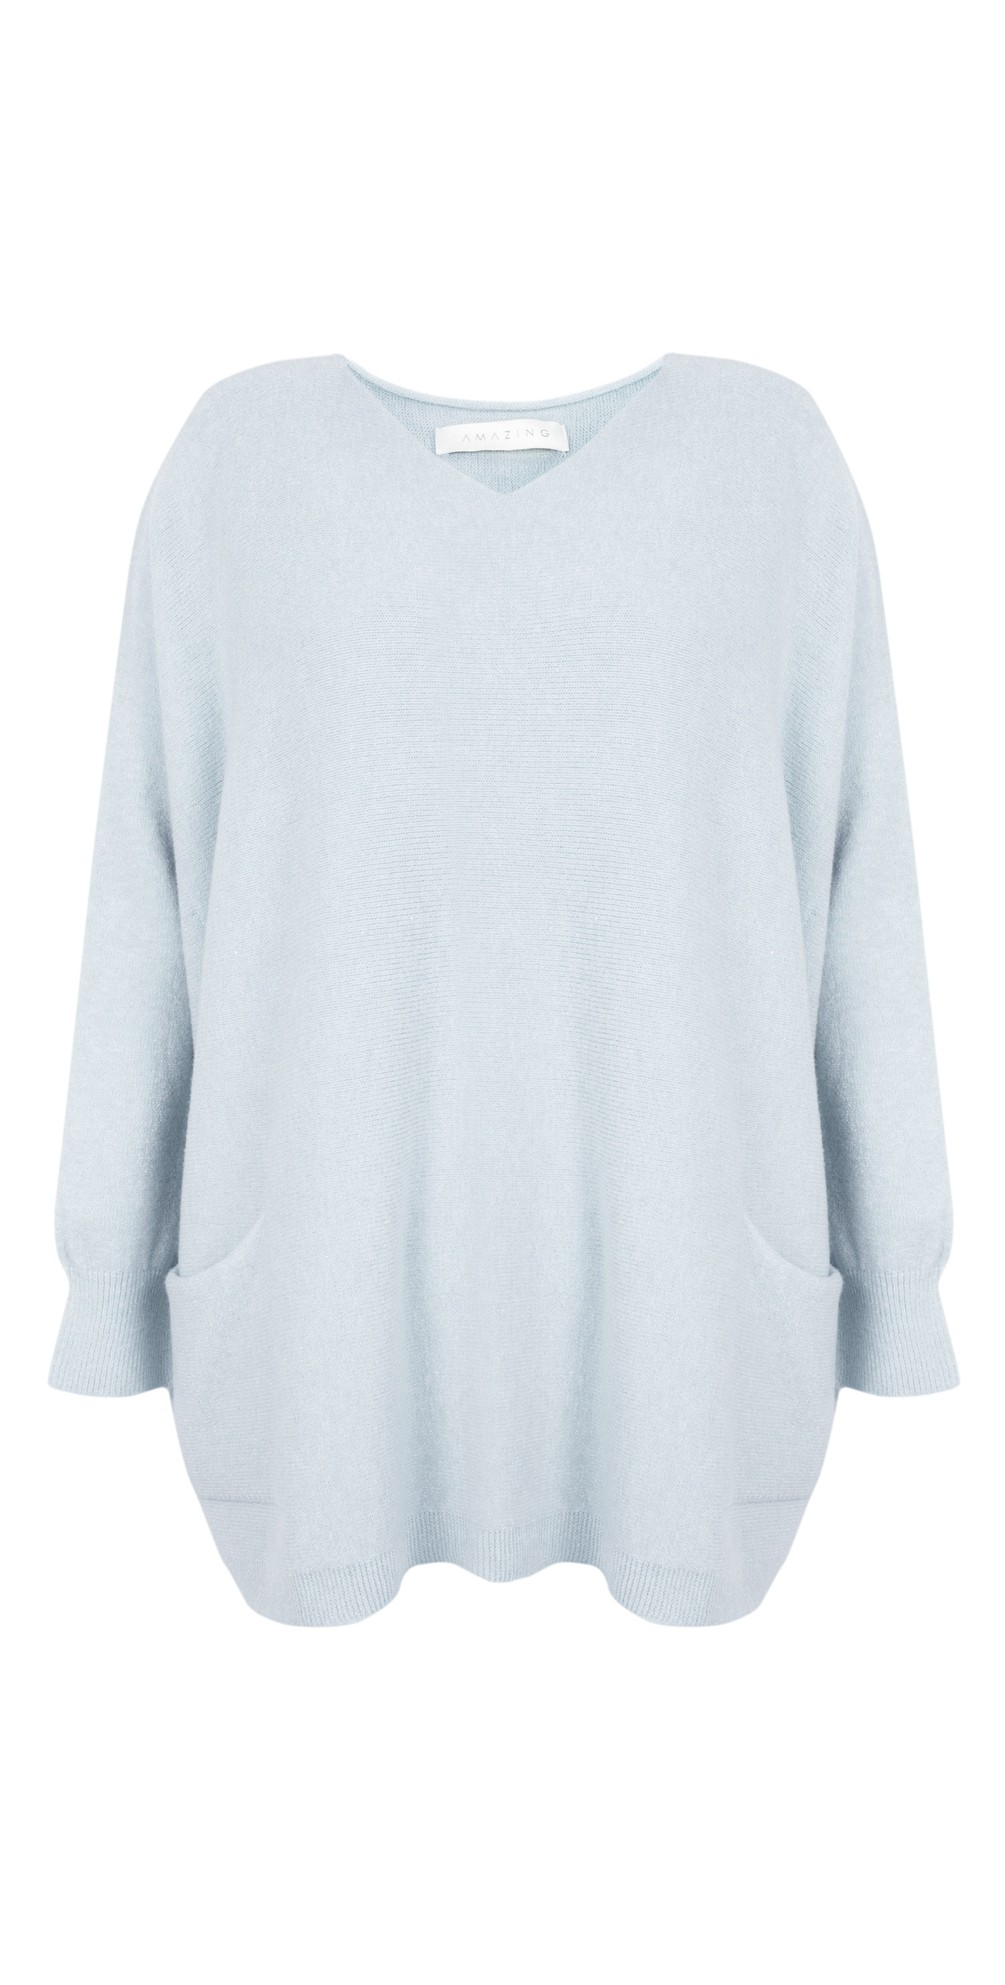 Carys Sweater Pale Blue - Amazing Woman